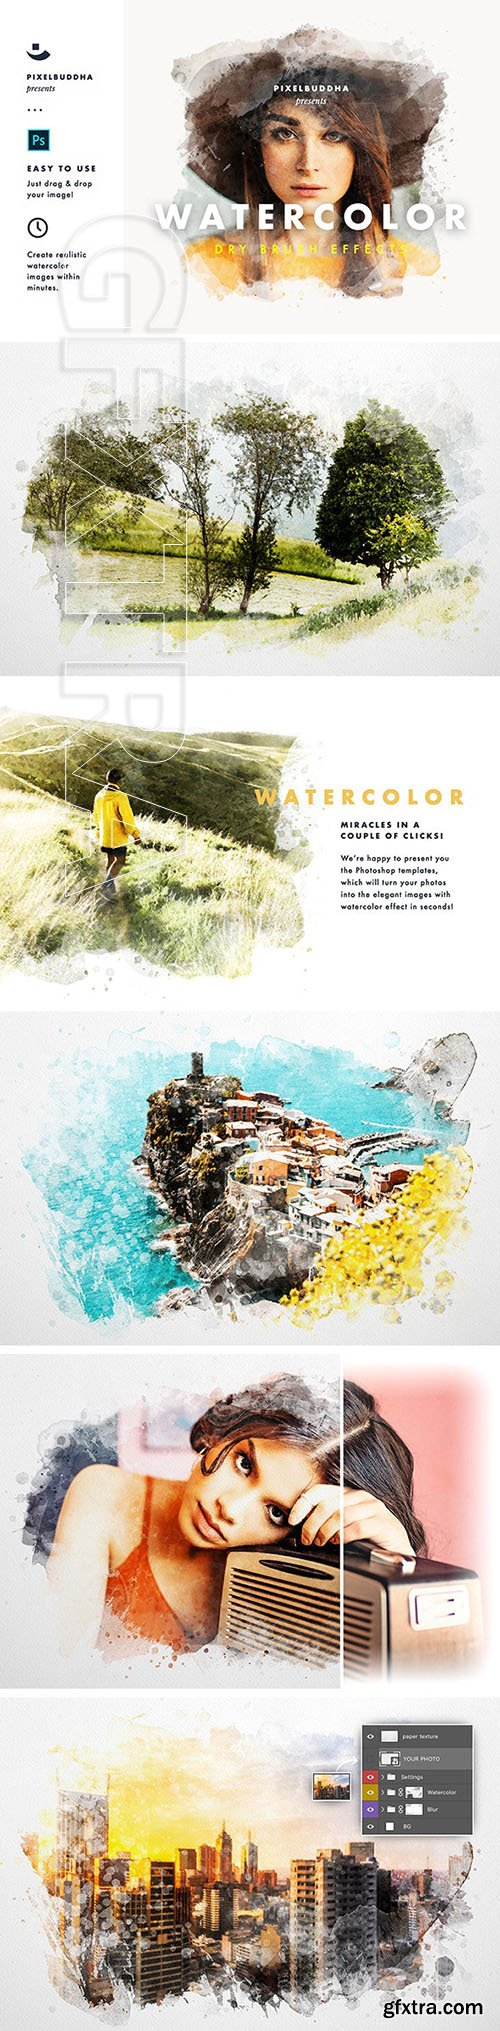 GraphicRiver - Watercolor Dry Brush Effects 24728220